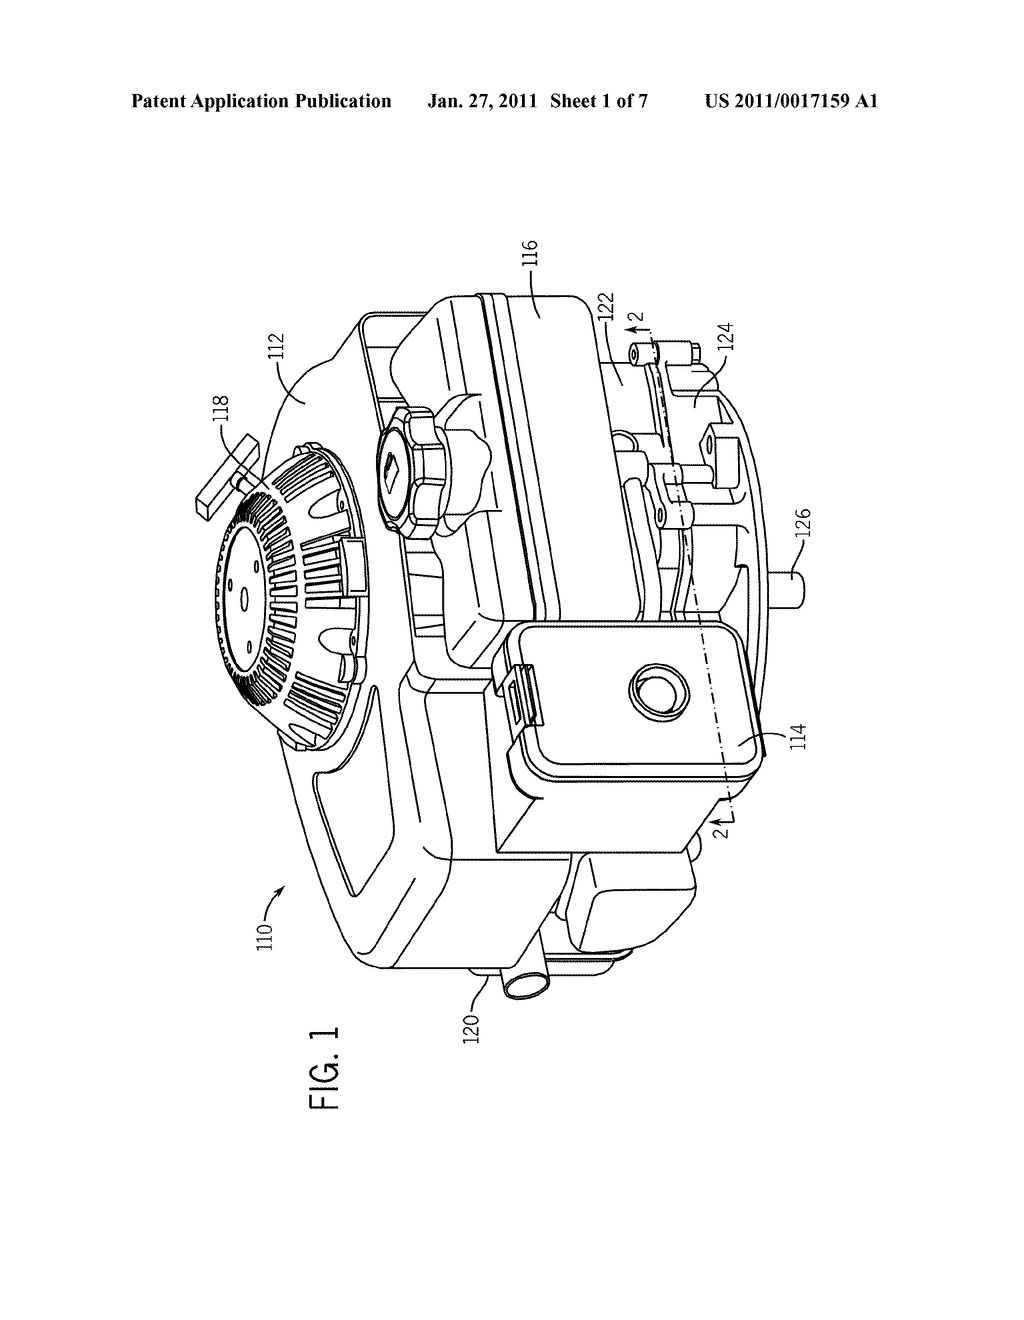 hight resolution of overhead valve and rocker arm configuration for a small engine diagram schematic and image 02